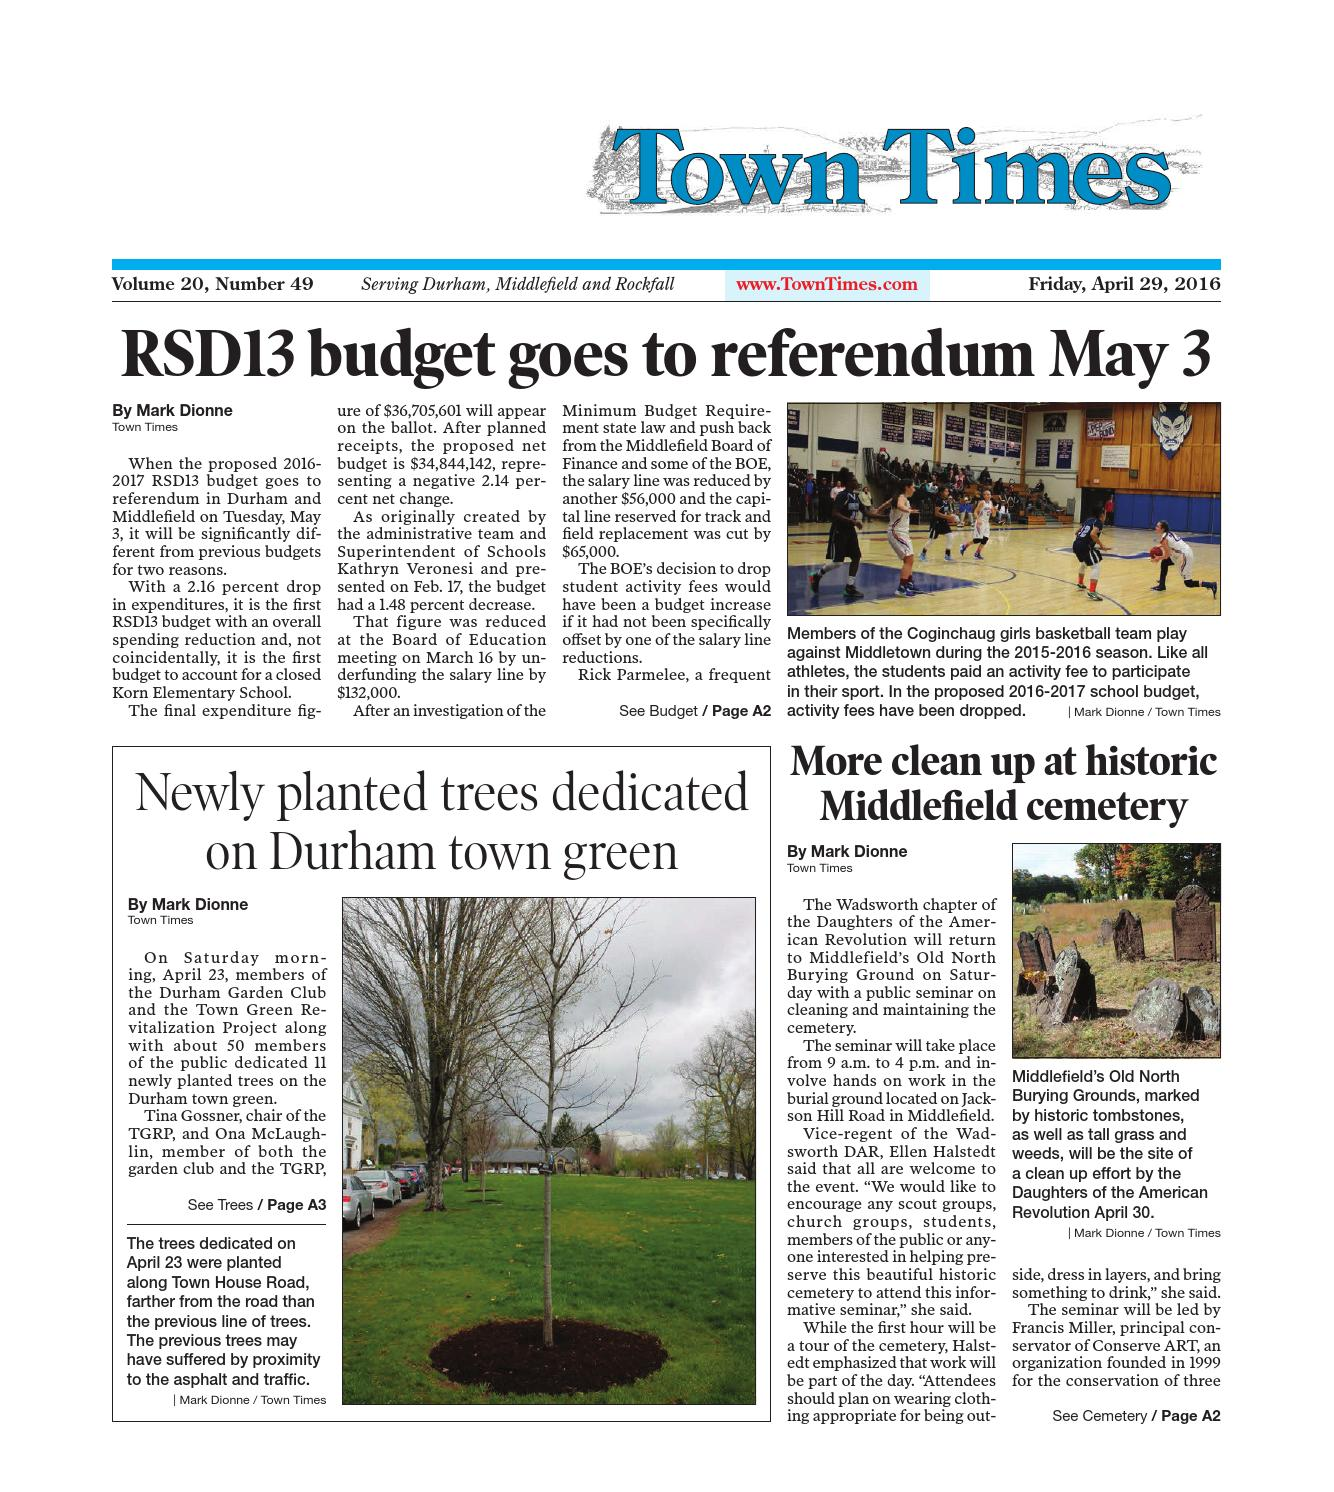 20160429towntimes by Town Times Newspaper - issuu